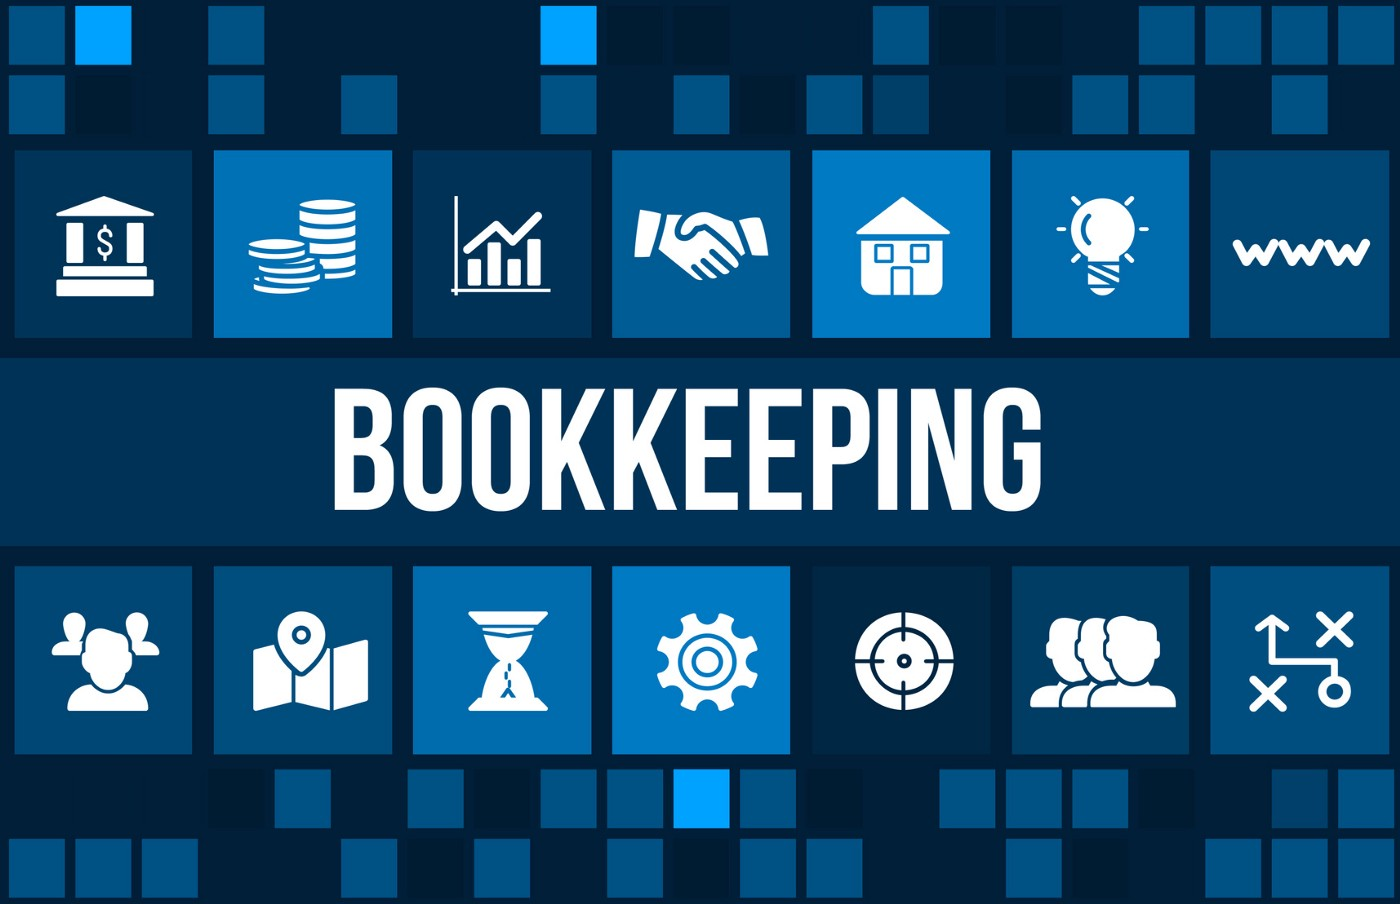 Importance of bookkeeping for businesses